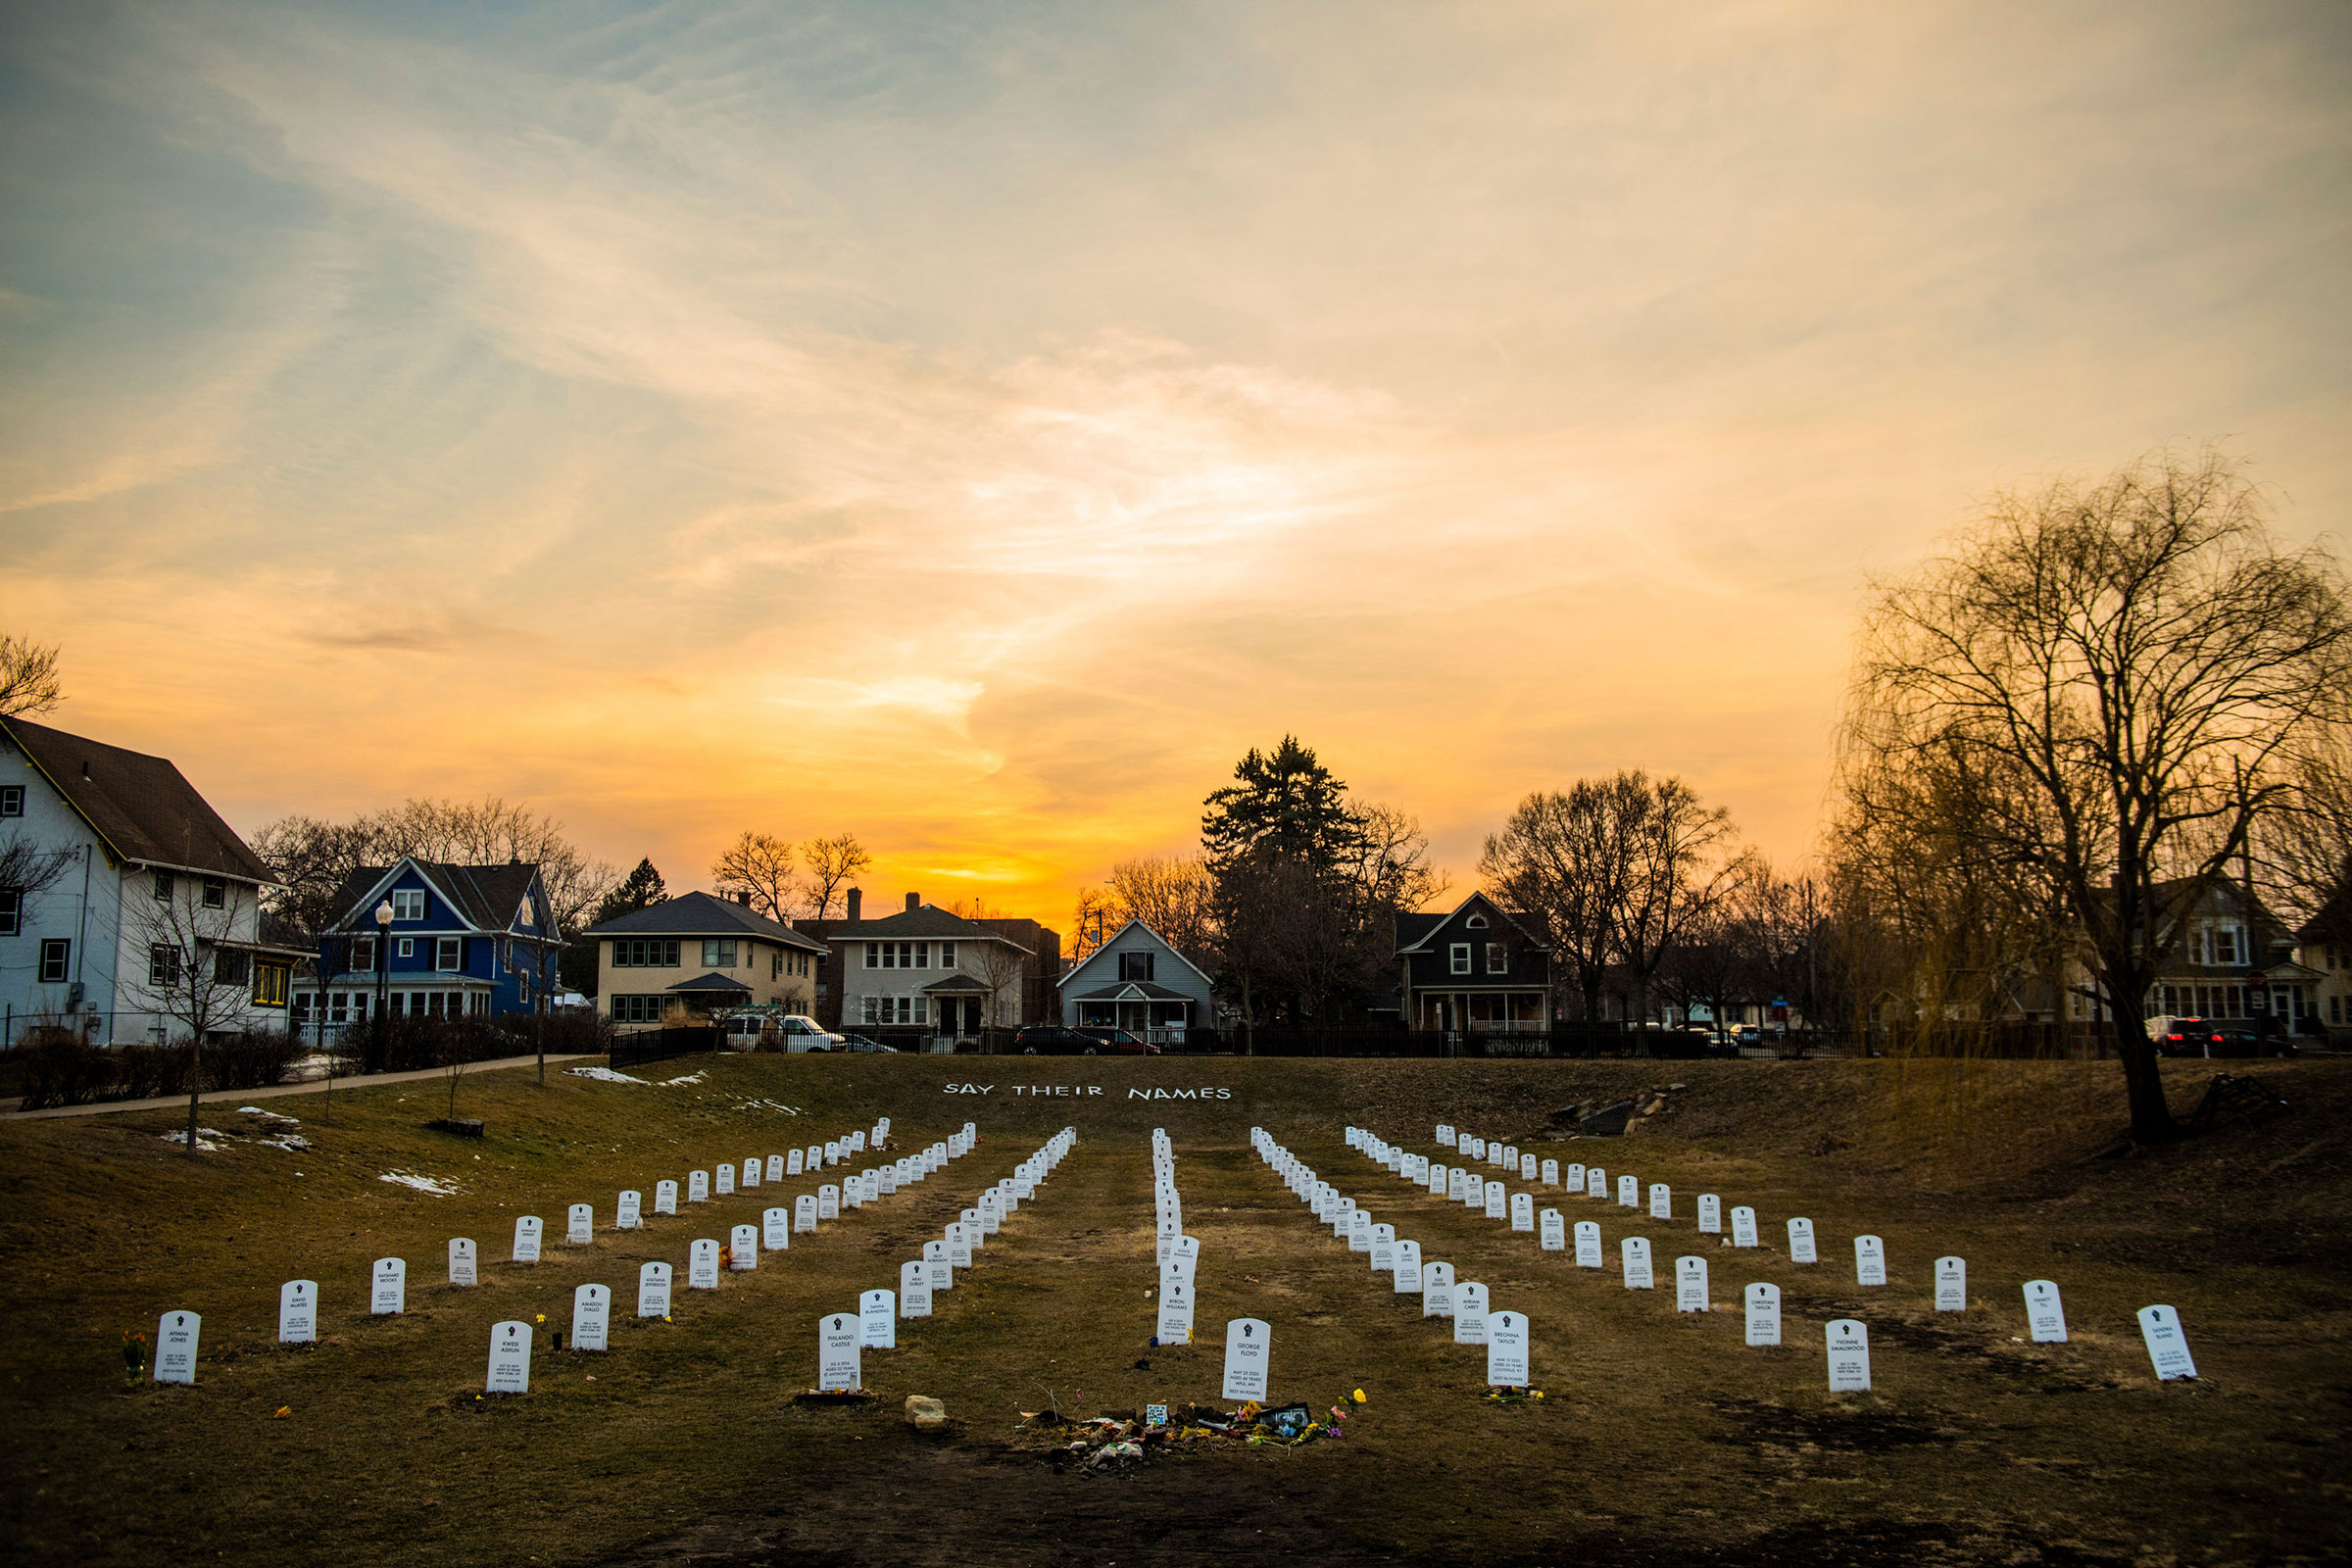 A view of  Say Their Names Cemetery  on March 9, 2021 in Minneapolis, Minnesota.